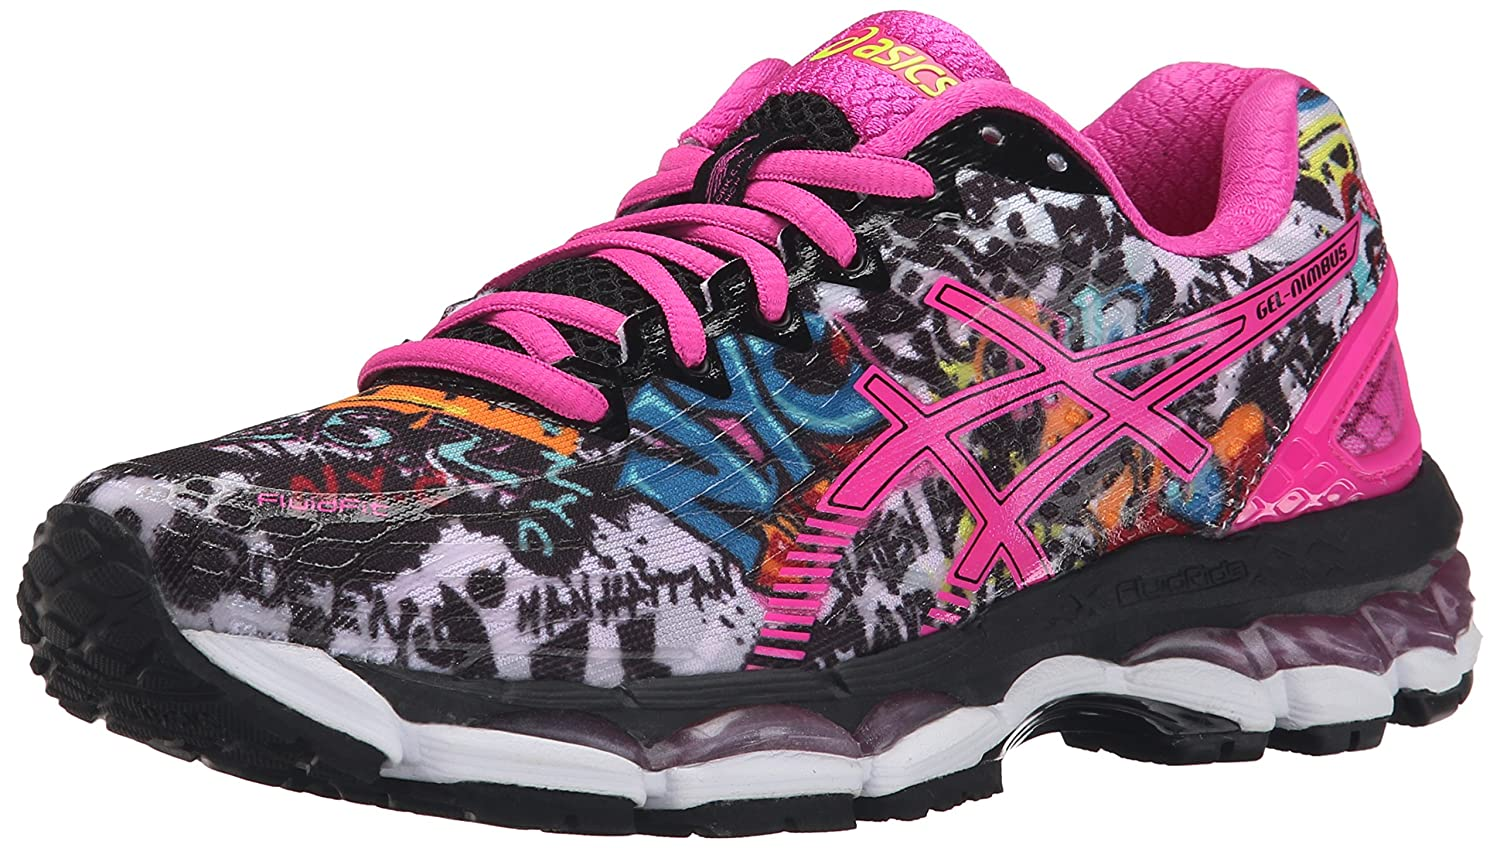 asics gel nimbus 17 nyc women's